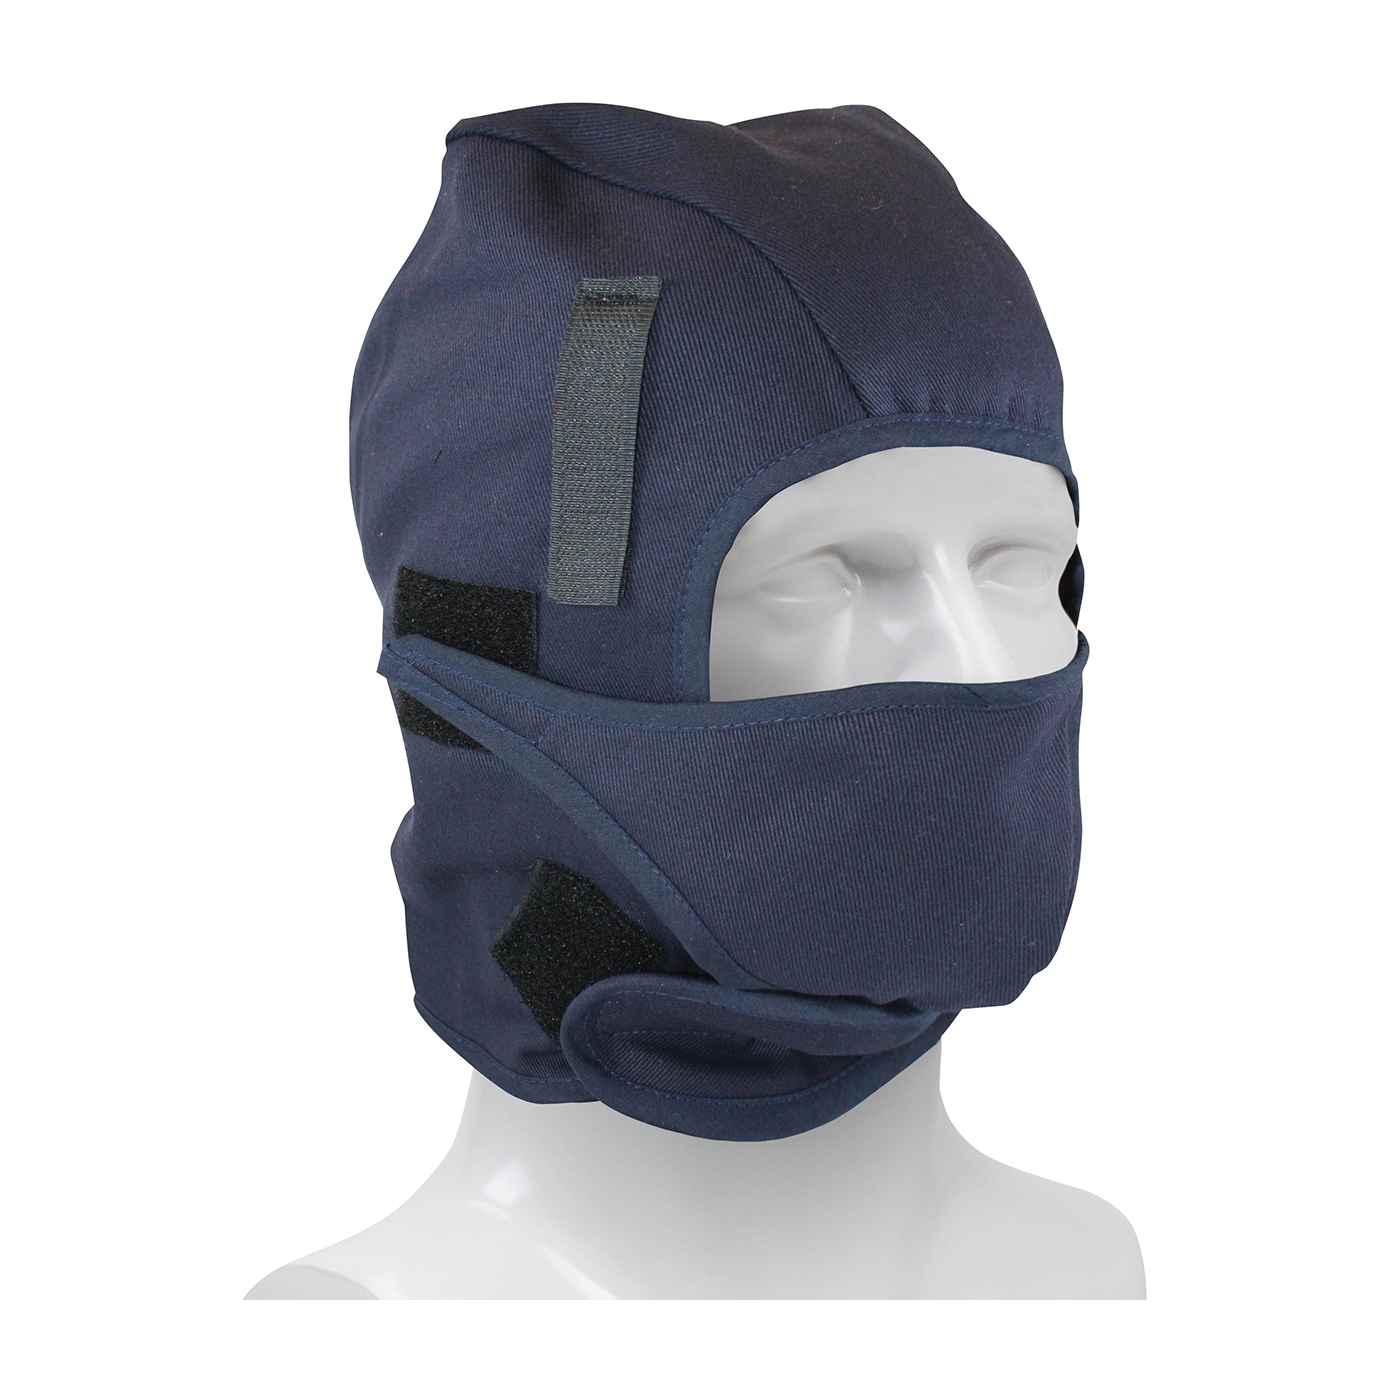 PIP® 364-ML2FMP 2-Layer Winter Liner With Mouthpiece and FR Treated Outer Shell, Universal, Navy Blue, Cotton Twill FR Main Fabric/Polyester Fleece Lining, Hook and Loop Closure